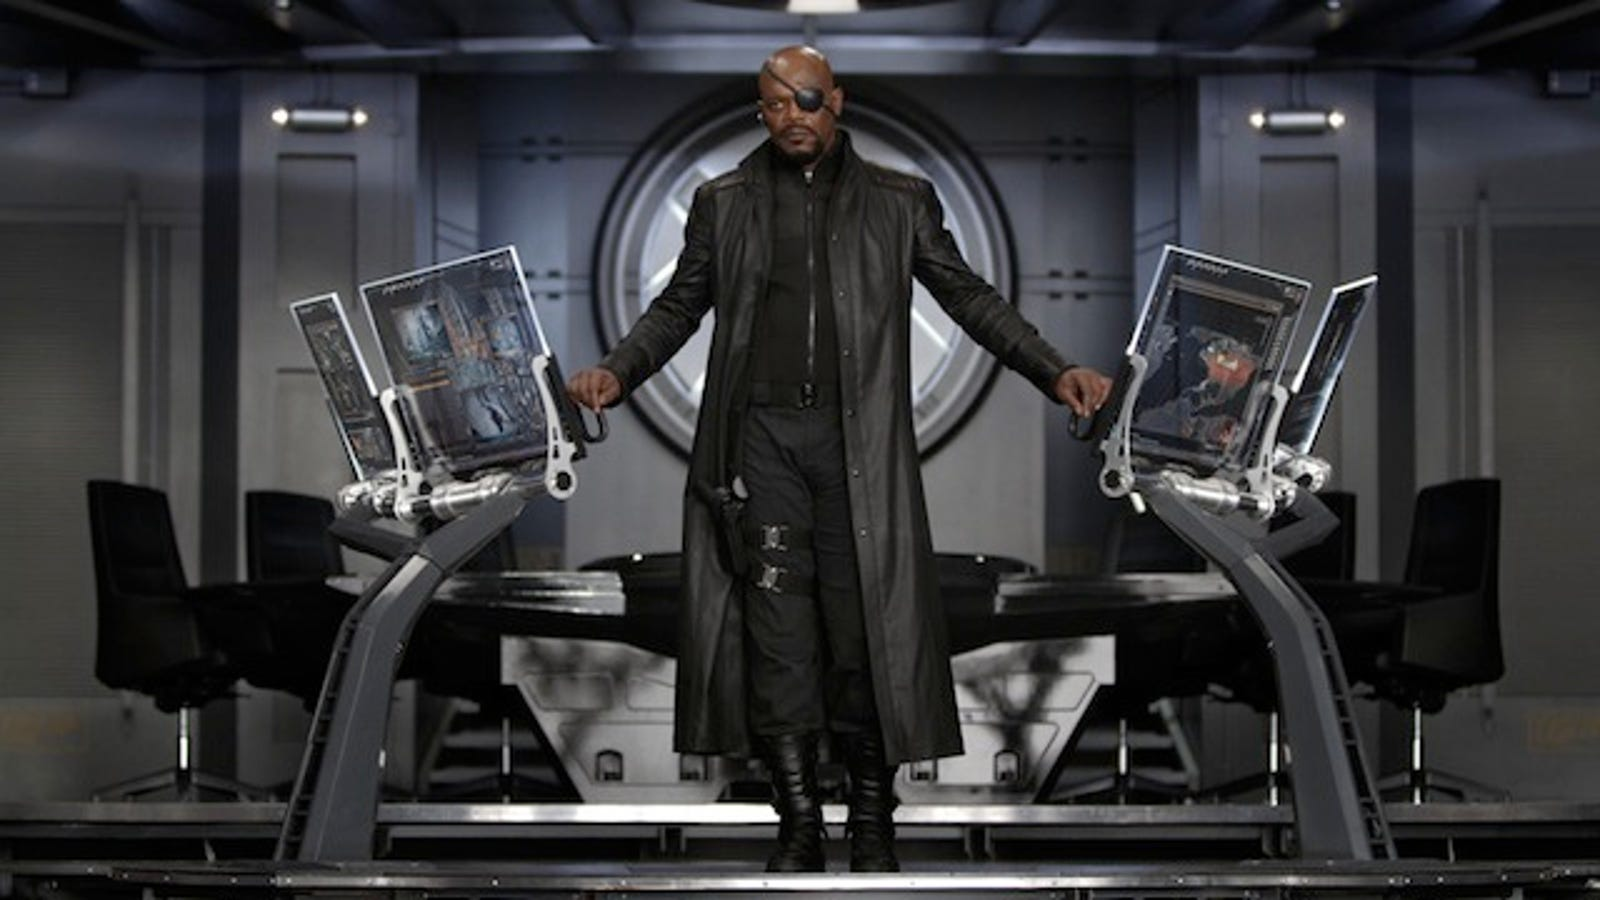 Were Nick Fury's actions in The Avengers legally justified?